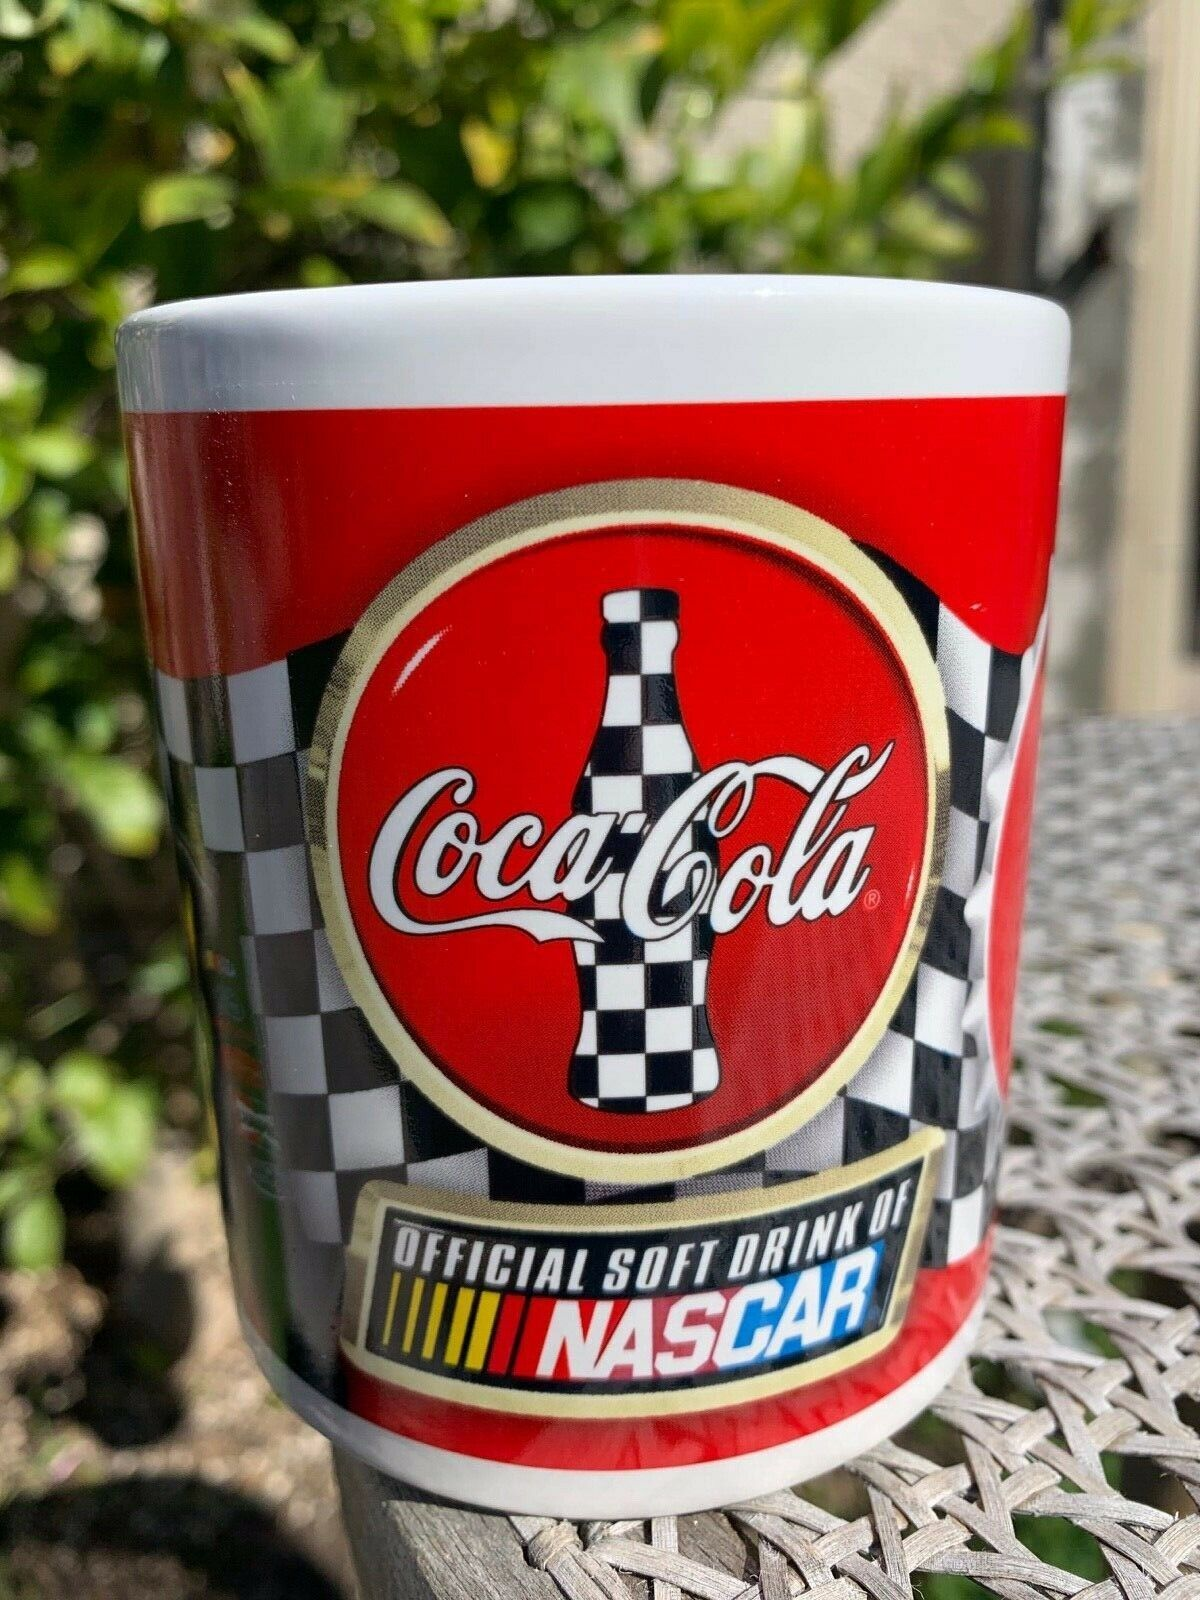 Primary image for Coca Cola Racing Family Mug Nascar Kurt Busch Checkered Flag Official Drink Cup